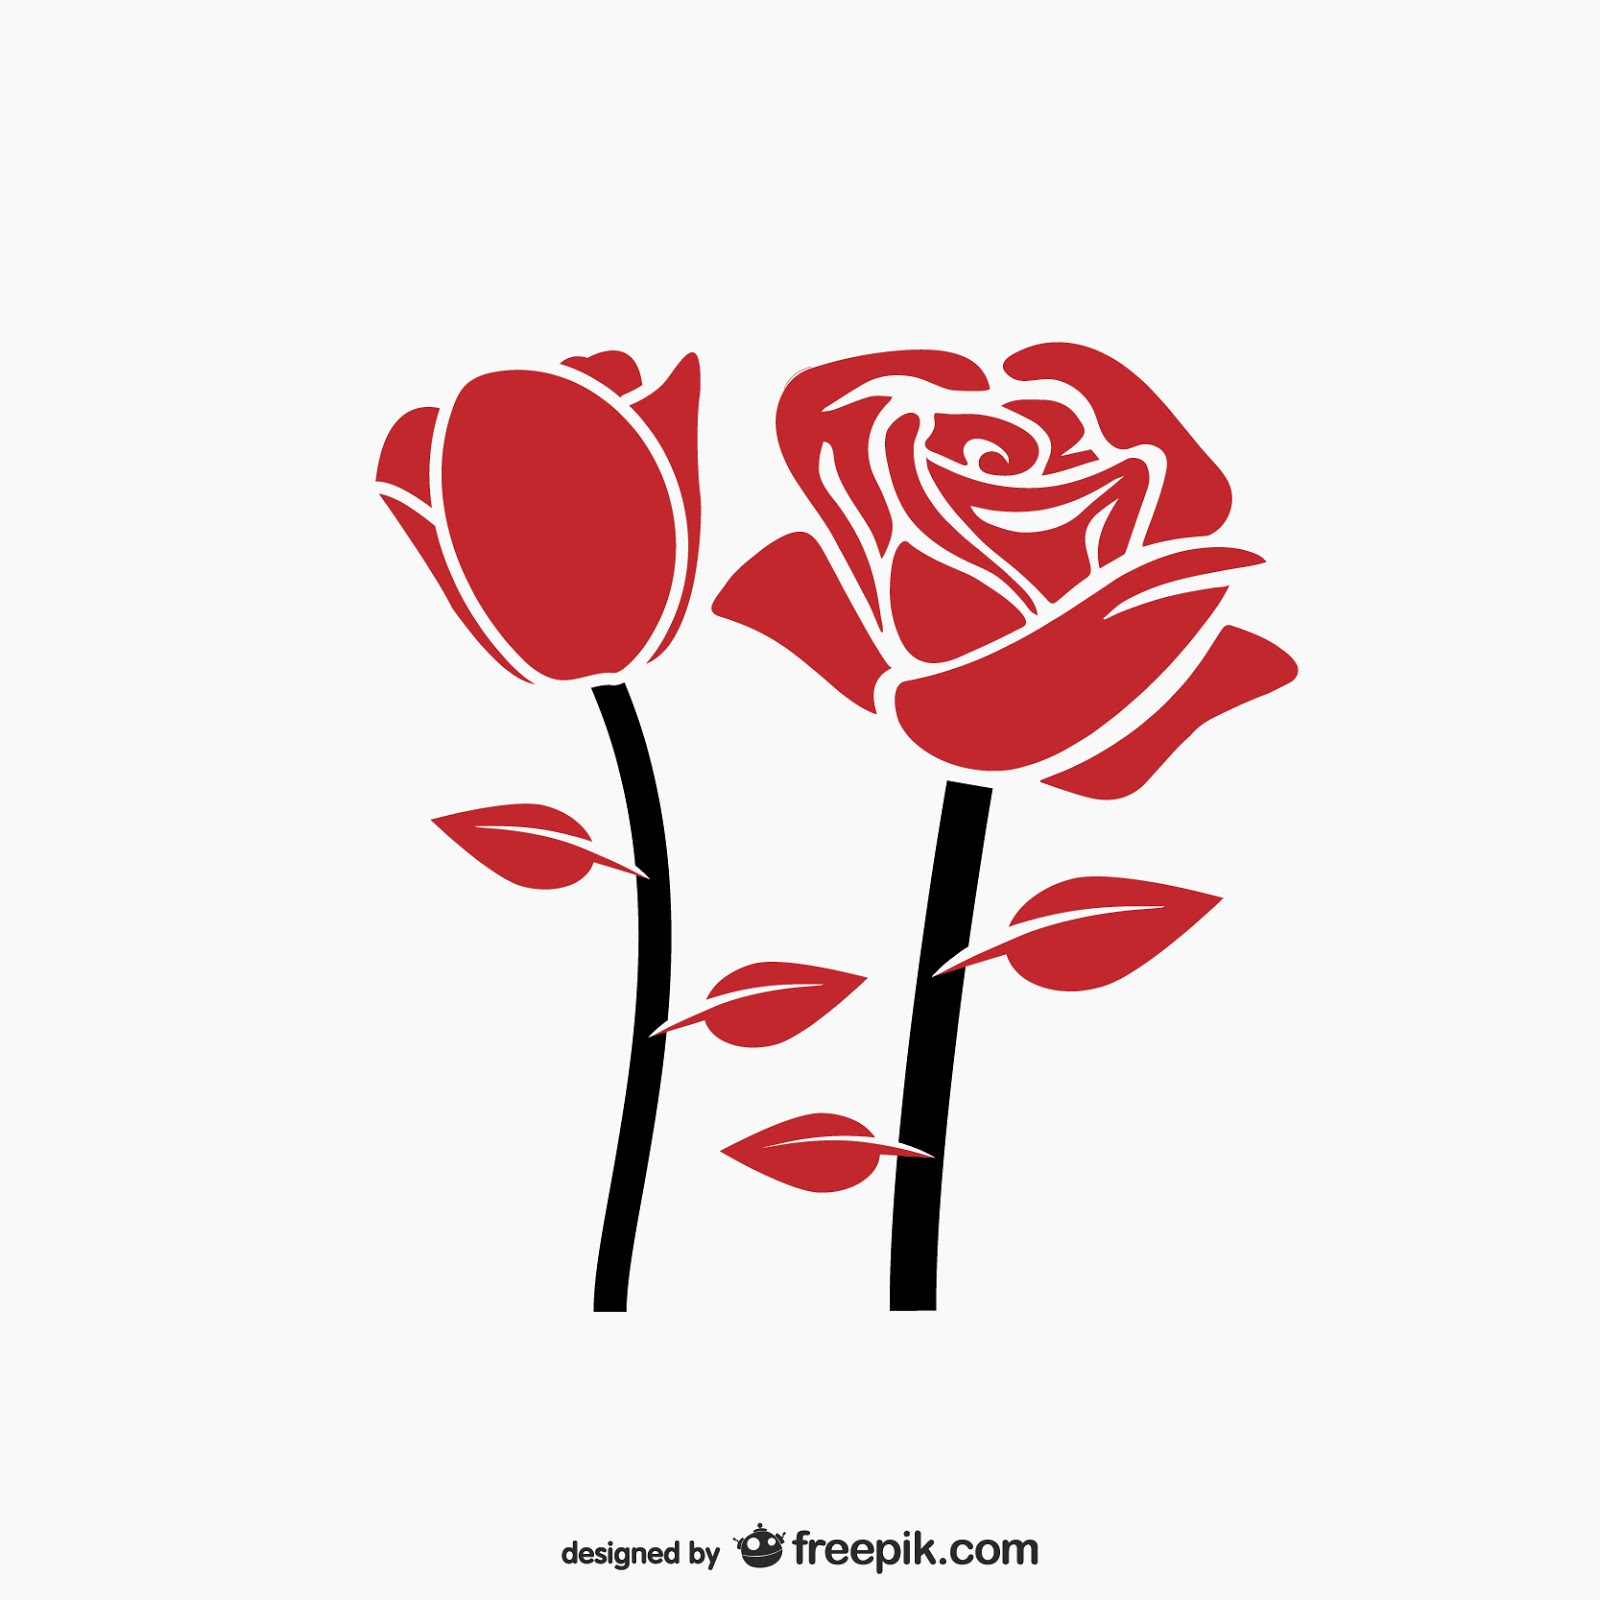 Red Rose Vector Free Download Vector CDR, AI, EPS and PNG Formats